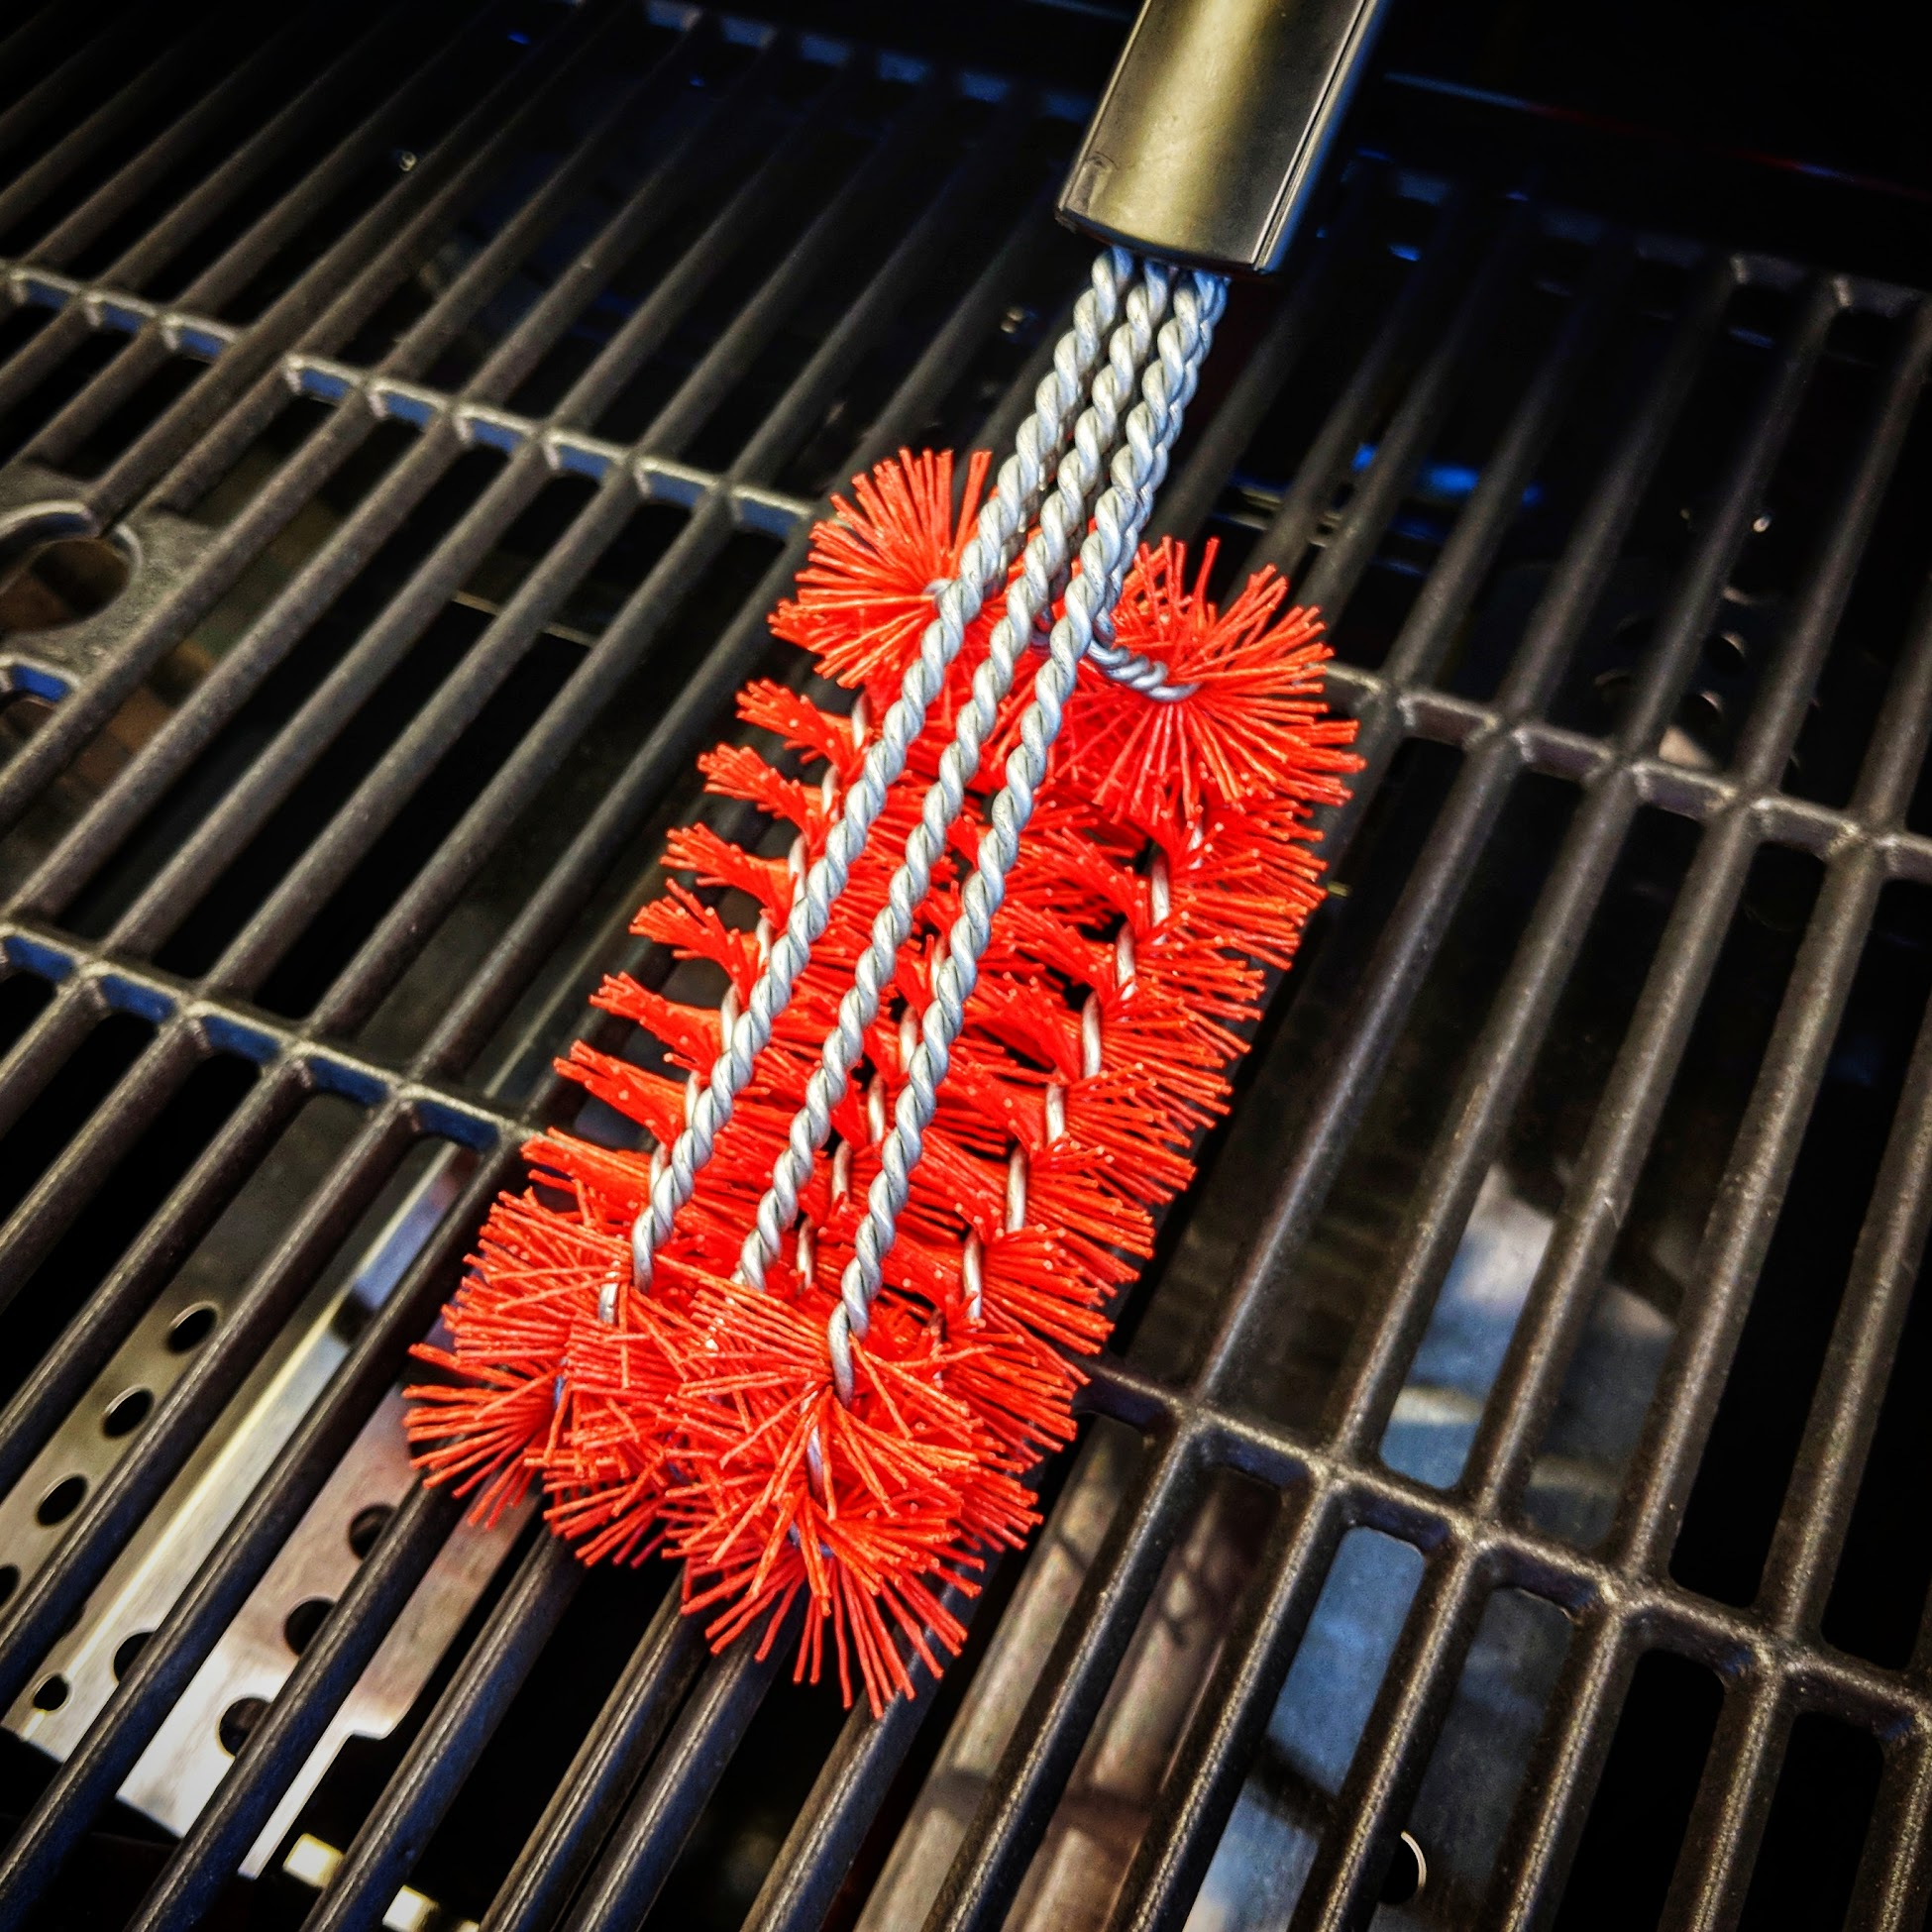 Safely clean your grill with these top grill brushes. - And be confident that you won't end up in the emergency room with a throat full of sharp steel wire bristles.